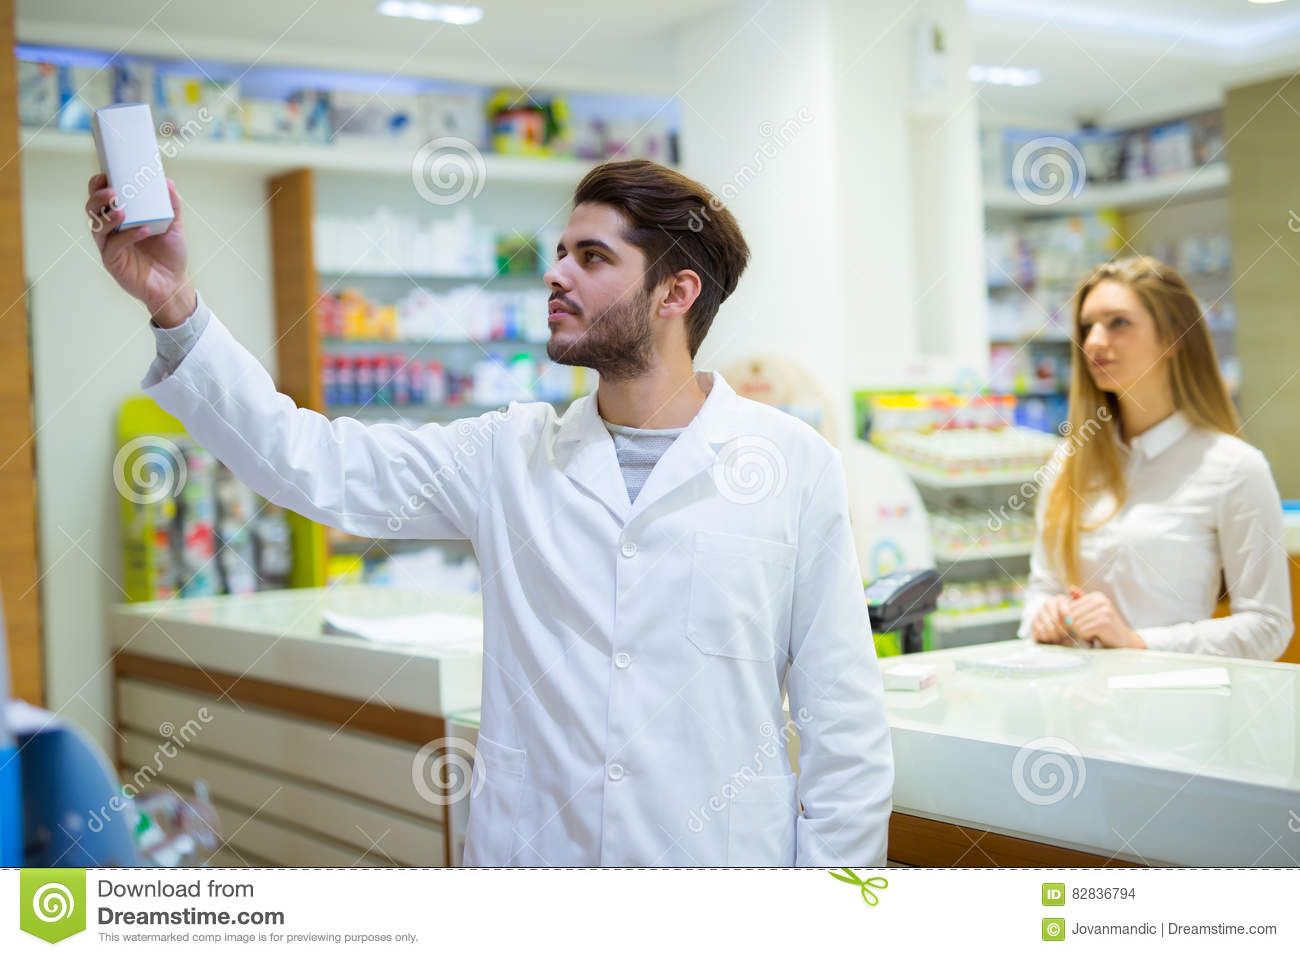 Experienced pharmacist counseling female customer in pharmacy